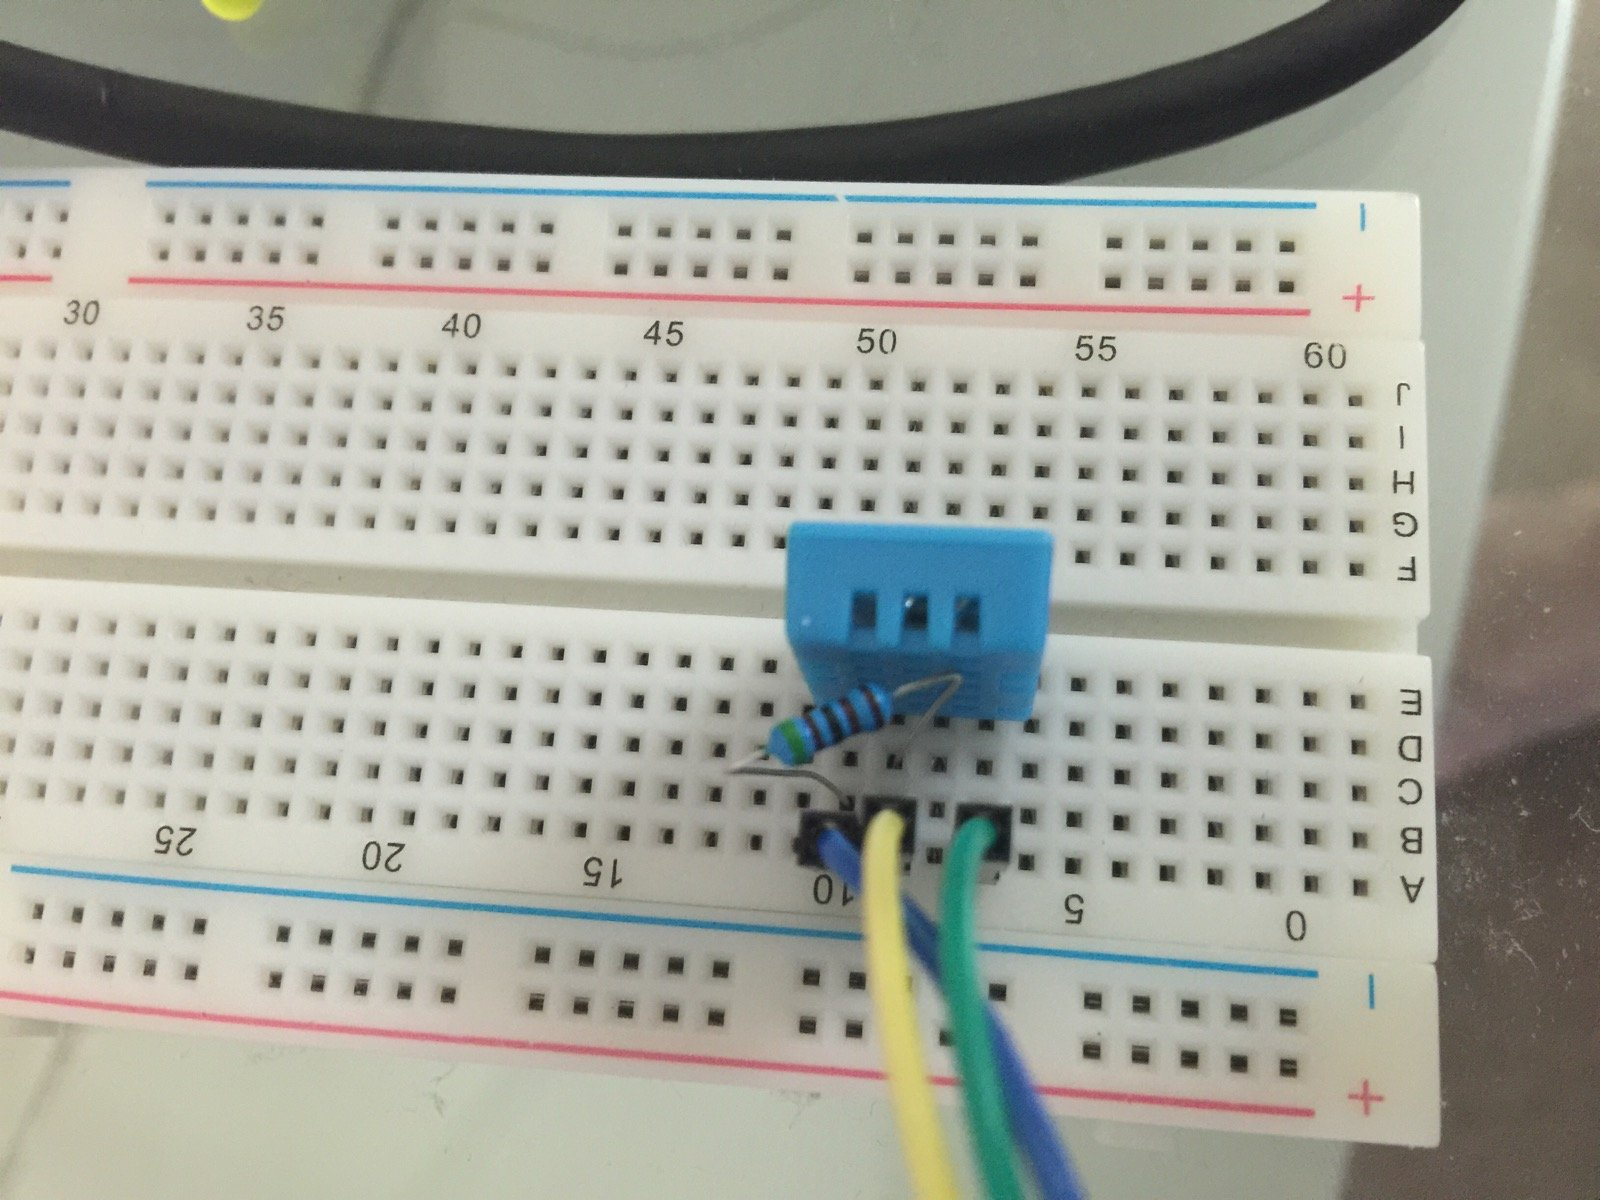 Connect A Dht11 Temperature Humidity Sensor To Raspberry Pi Gcits Circuit Wiring Diagrams Also Schematic Diagram On Breadboard